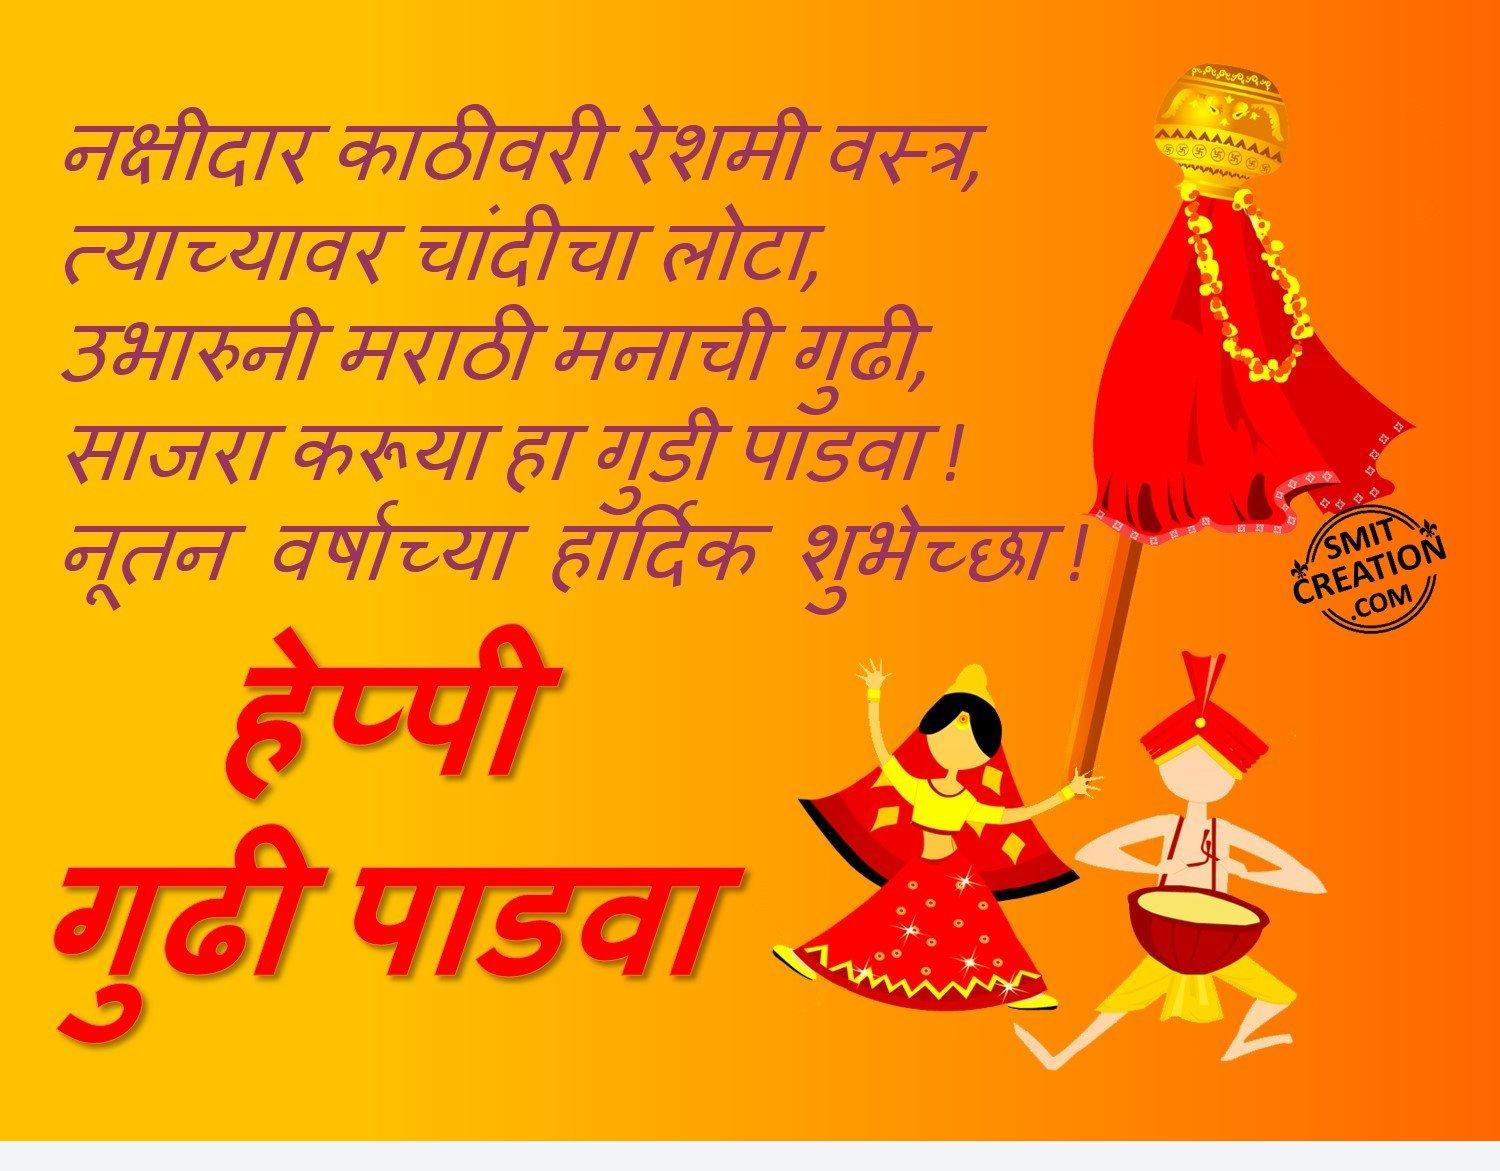 Gudi padwa pictures and graphics smitcreation page 6 download image m4hsunfo